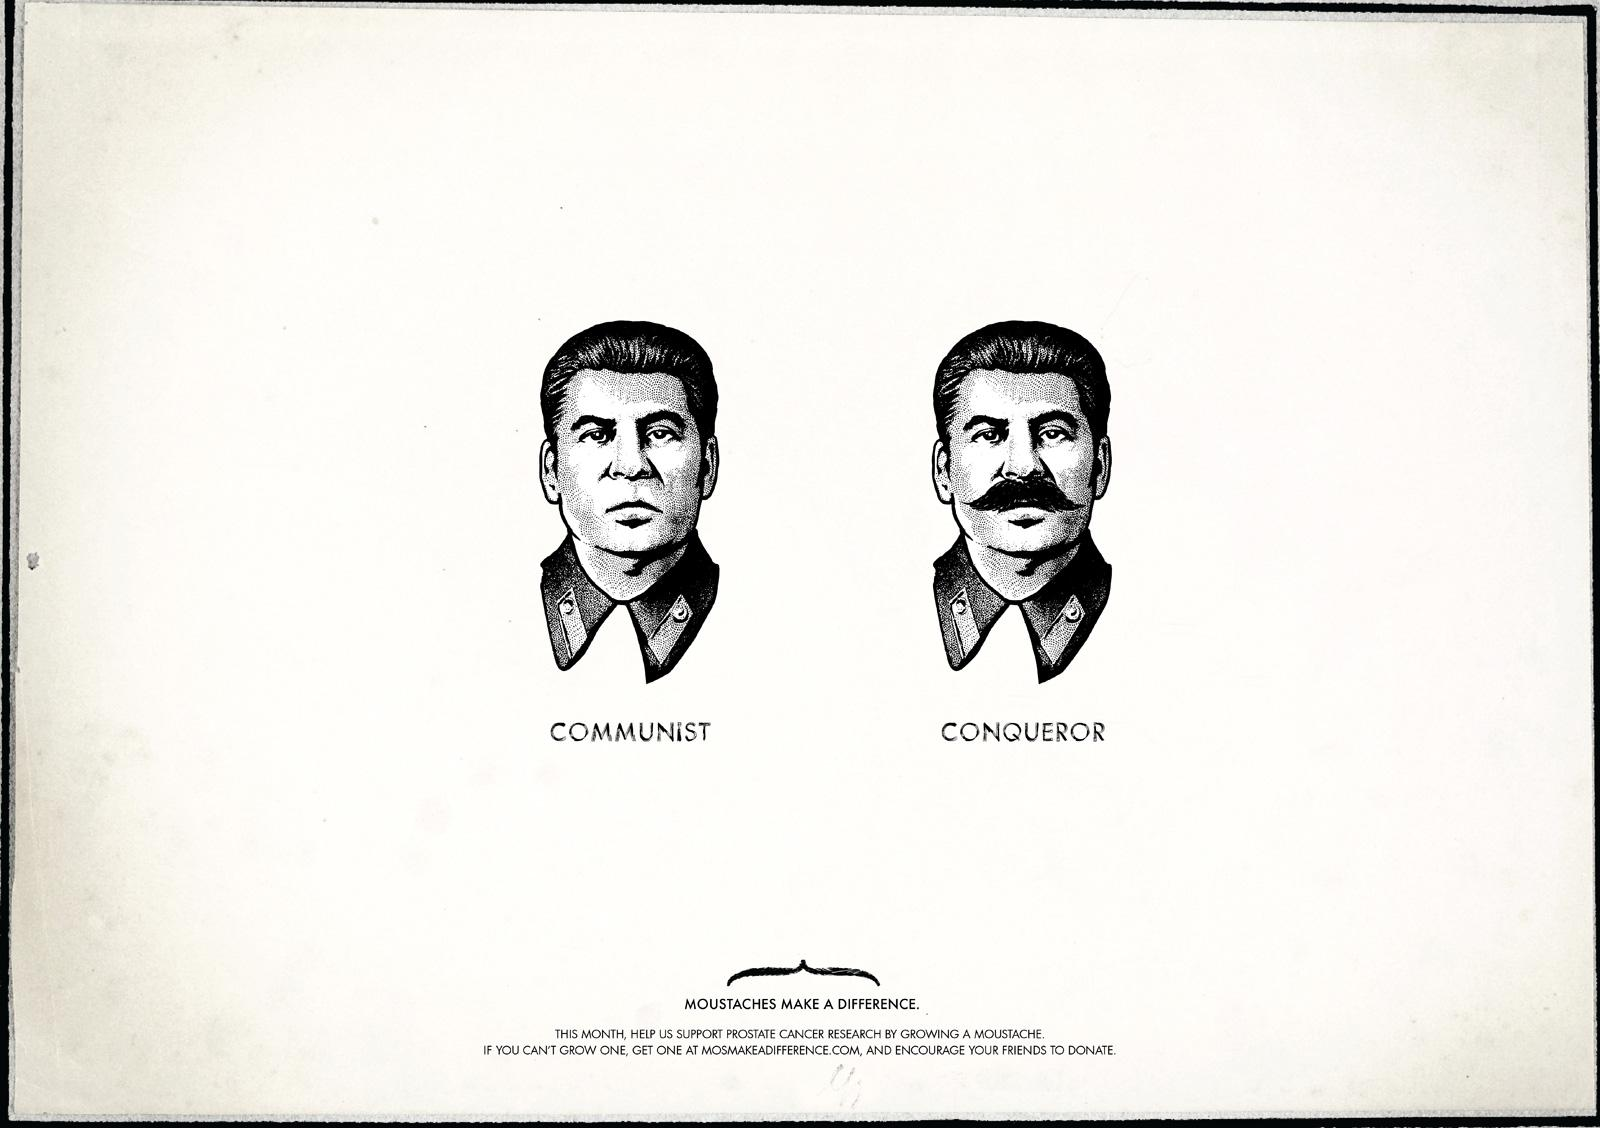 Moustaches Make A Difference Print Ad -  Stalin